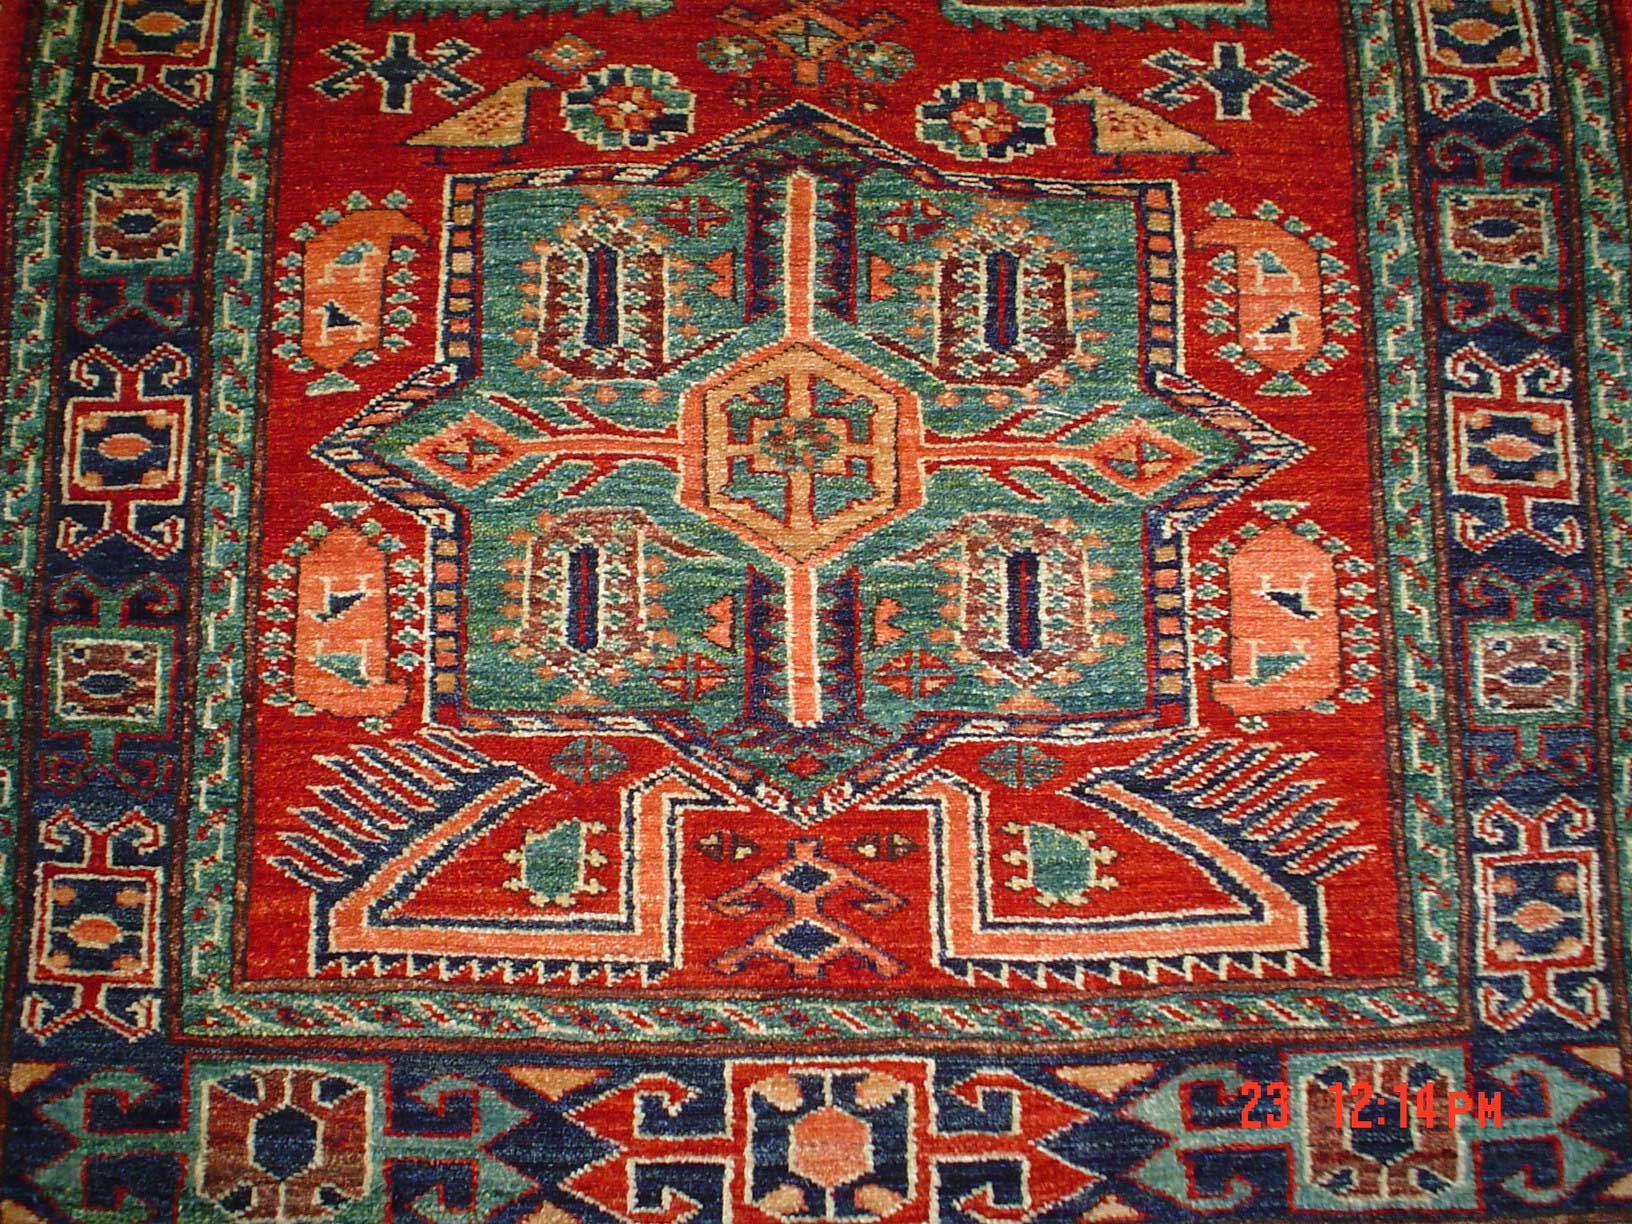 3 x 5 Kazak with the Akstafa Peacock design. Sold.